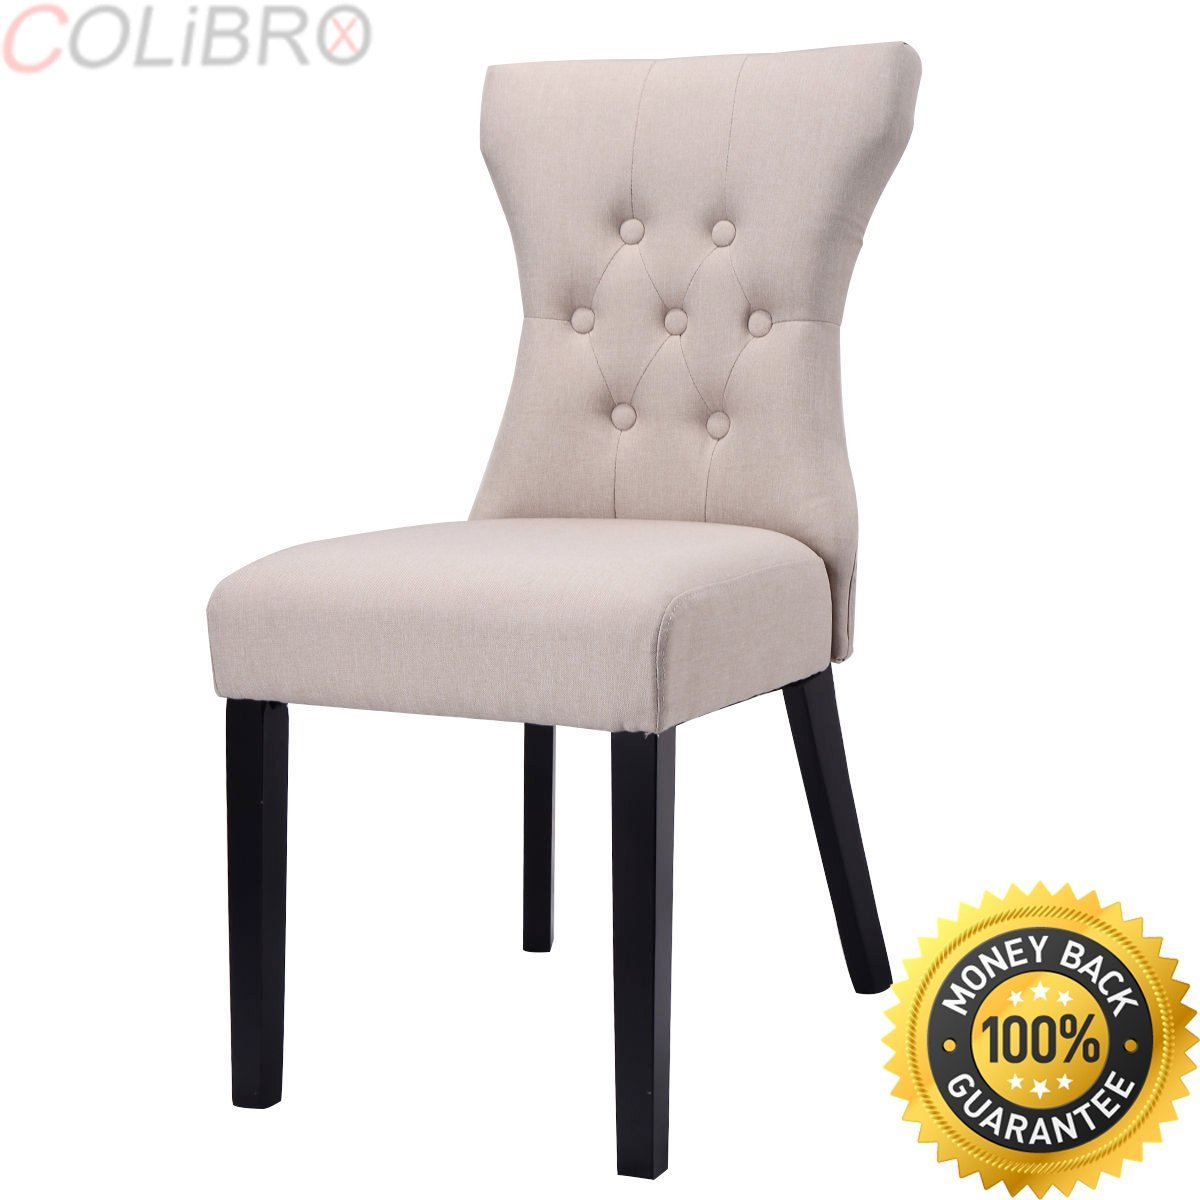 e39376ac03e5 Get Quotations · COLIBROX--Set of 2 Dining Chair Modern Armless Tufted  Design Living Room Furniture Beige